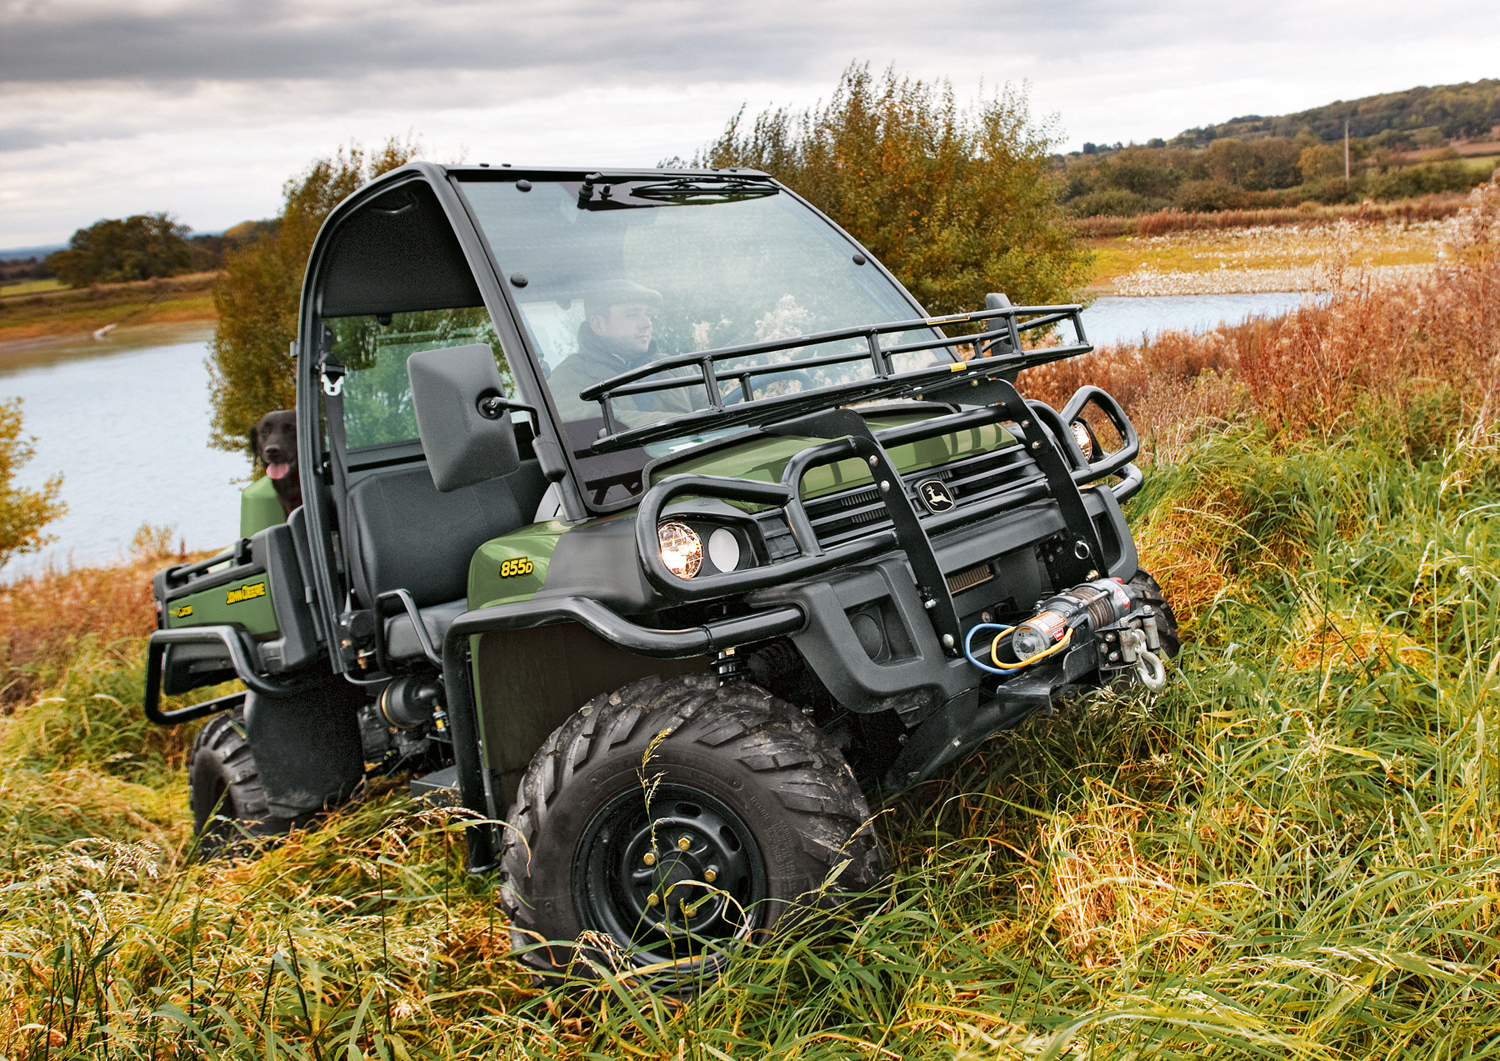 John Deere XUV 855D Gator with new power steering - Gator features new power steering